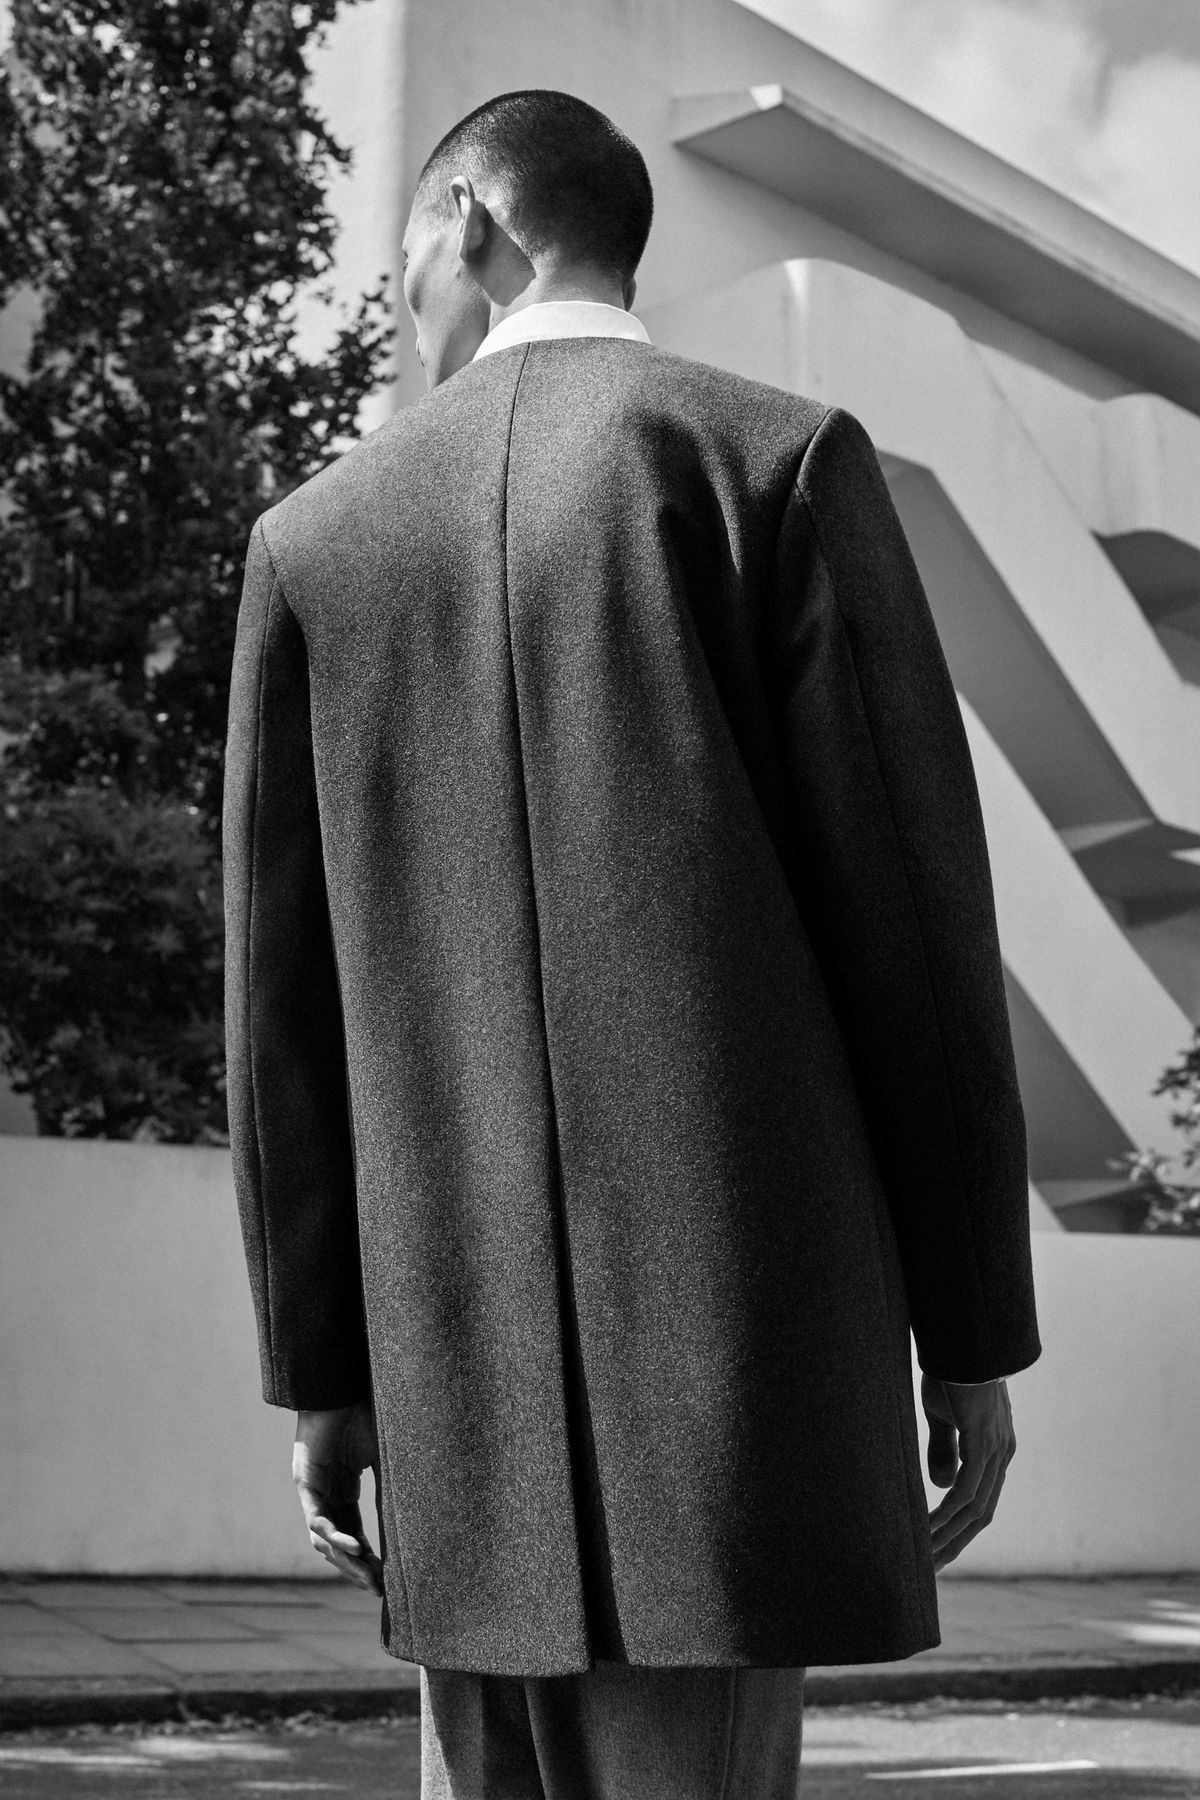 A back view of a man wearing a coat with a single slit running the entire length of the garment.